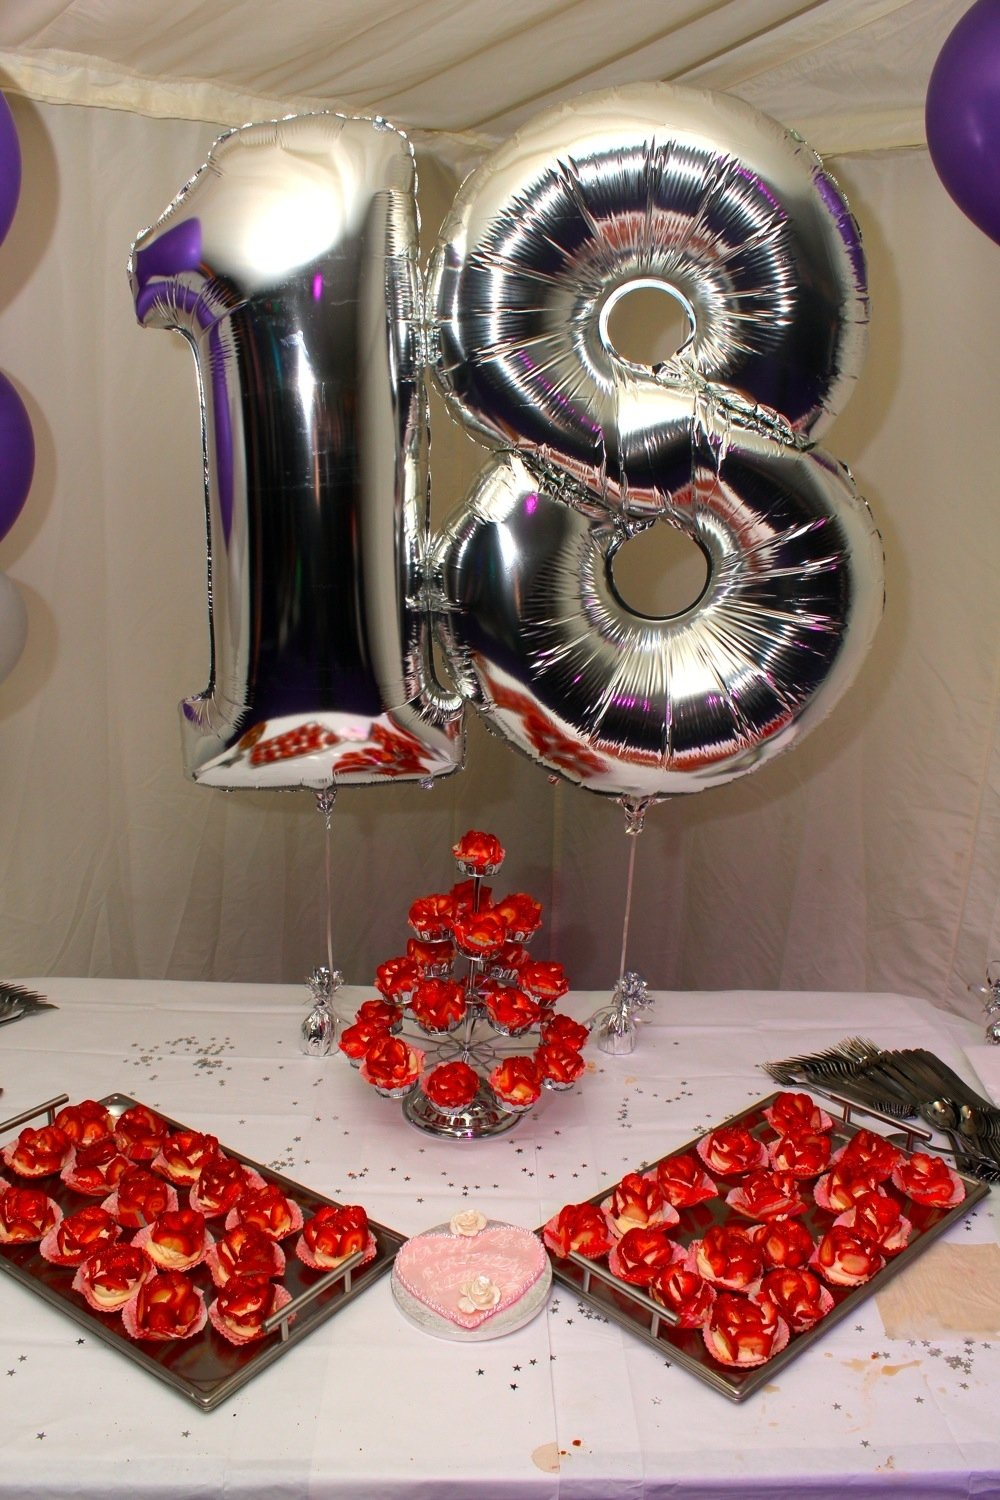 10 Attractive 18Th Birthday Party Ideas For Guys 18th birthday party ideas for guys 18th birthday party ideas that 2 2020